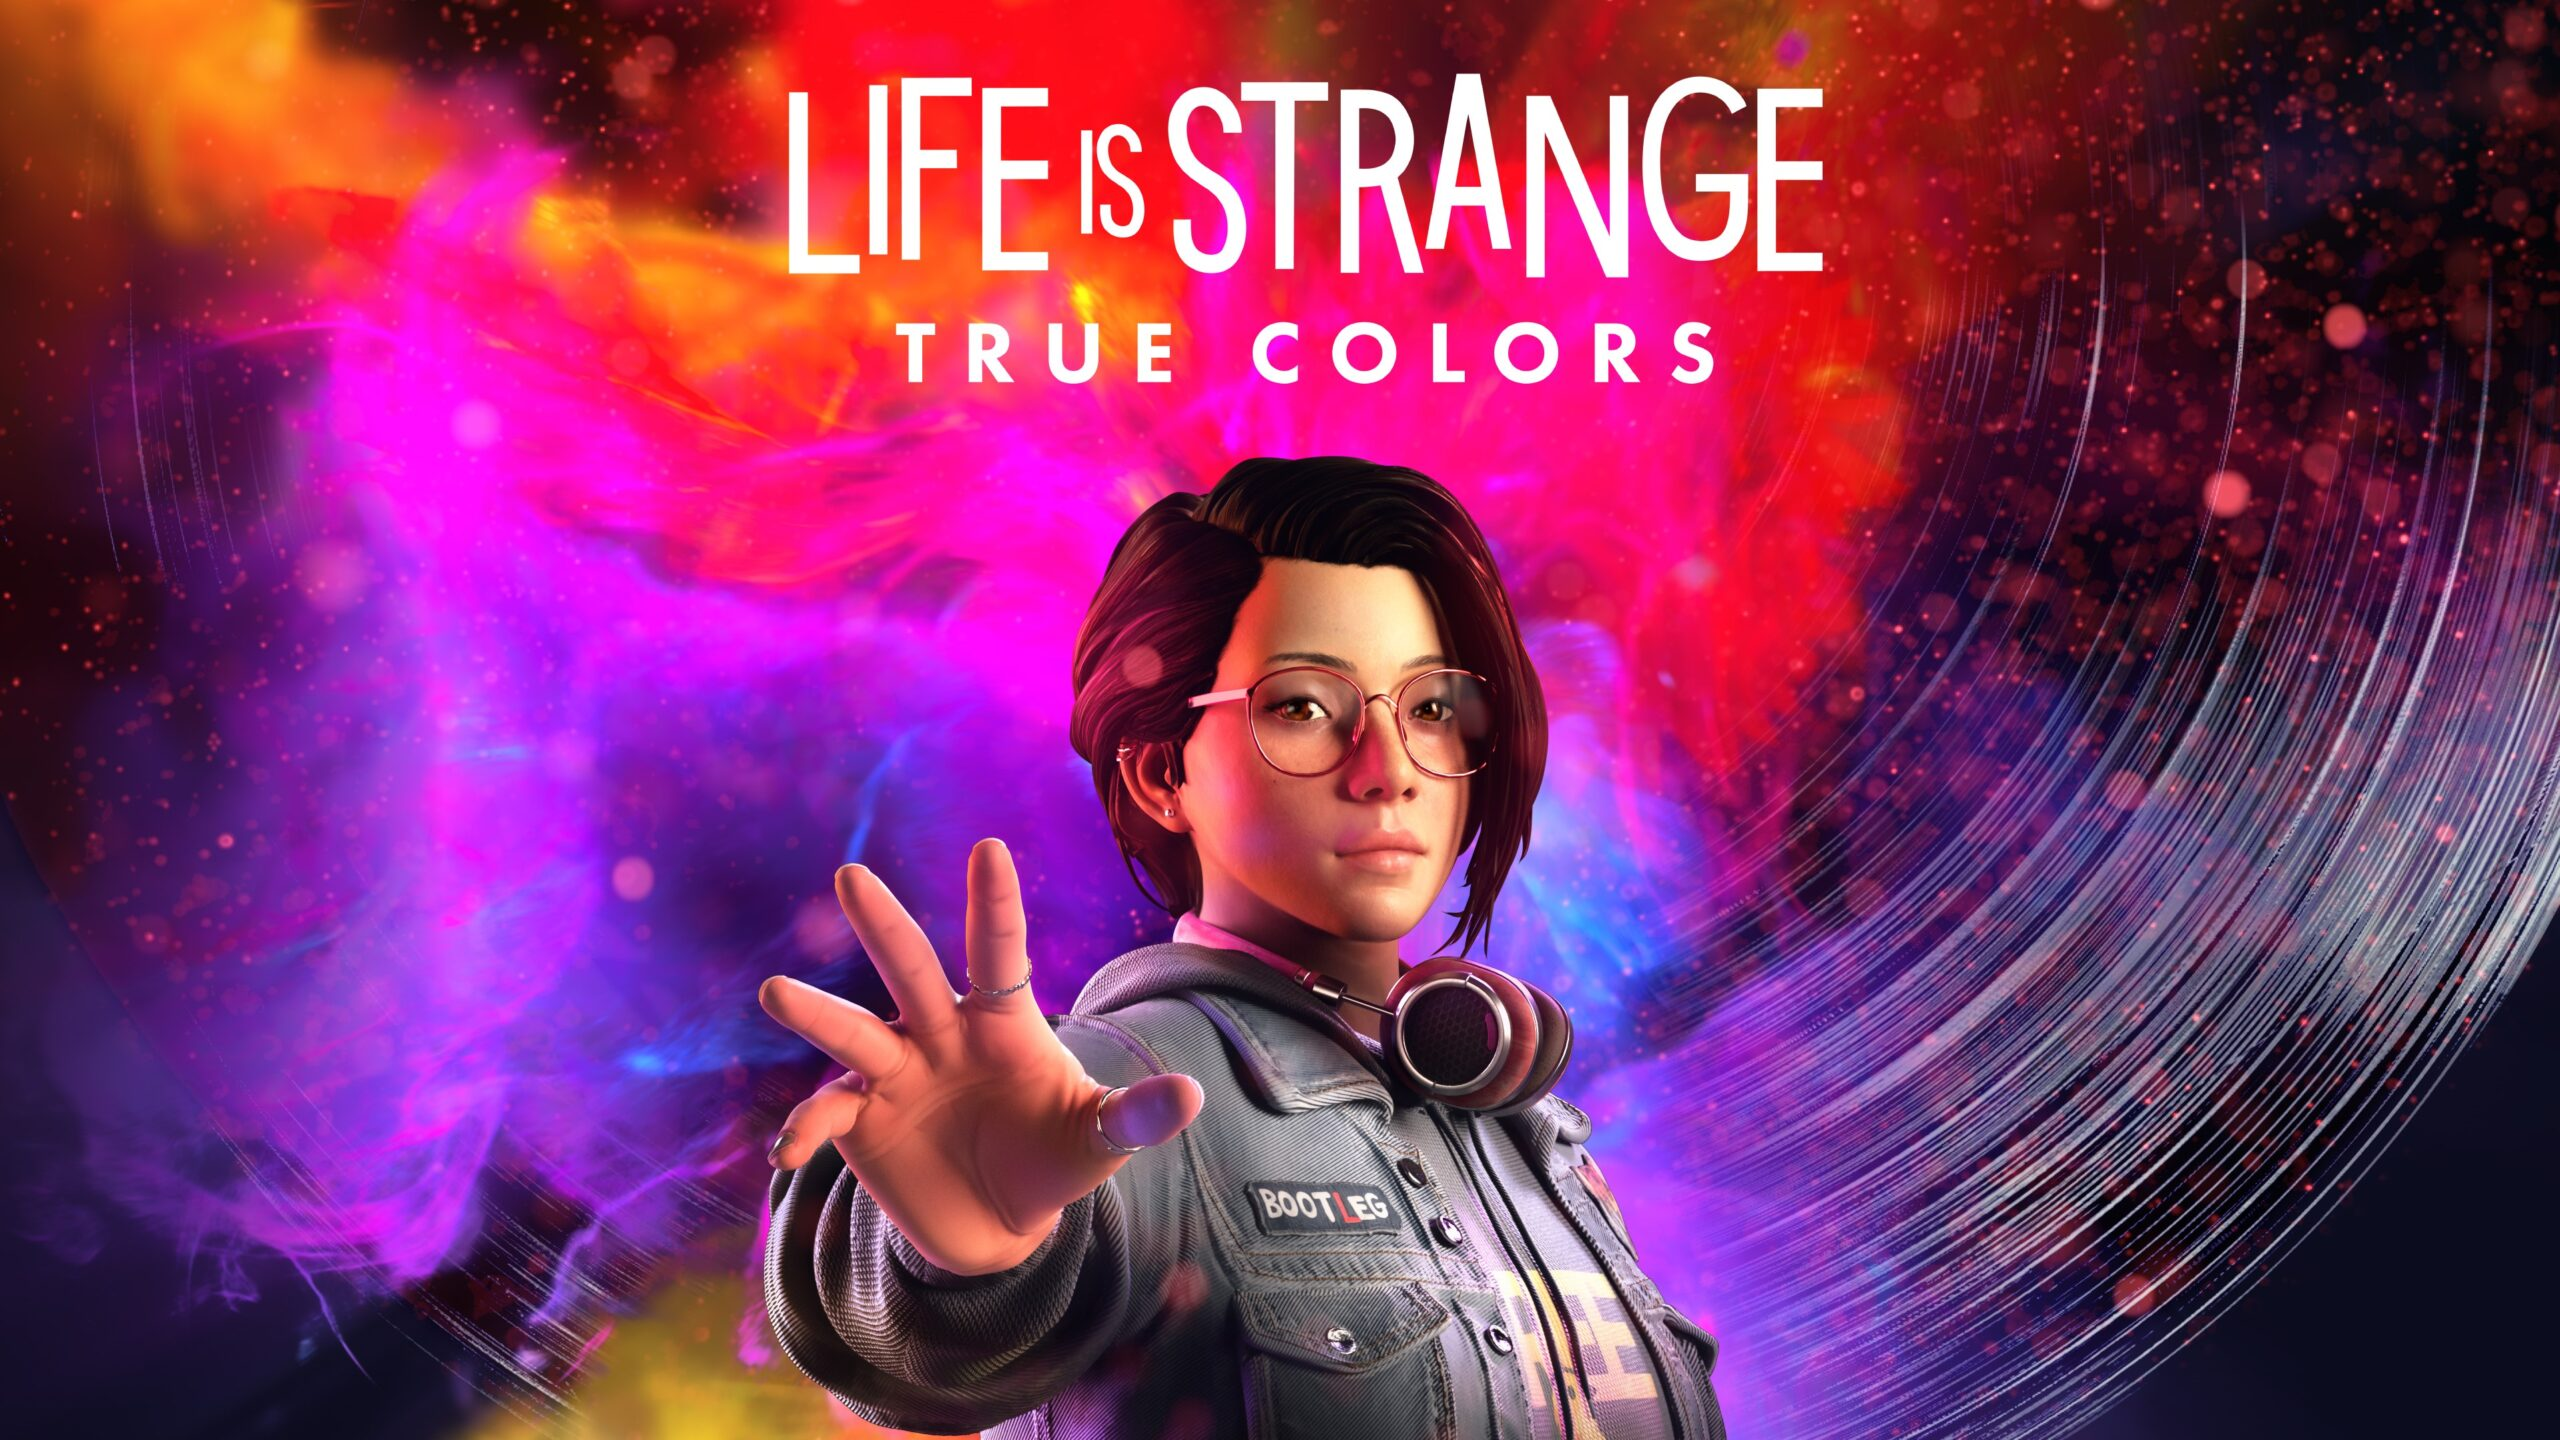 life-is-strange-3-is-a-big-change-from-past-games-–-here's-why